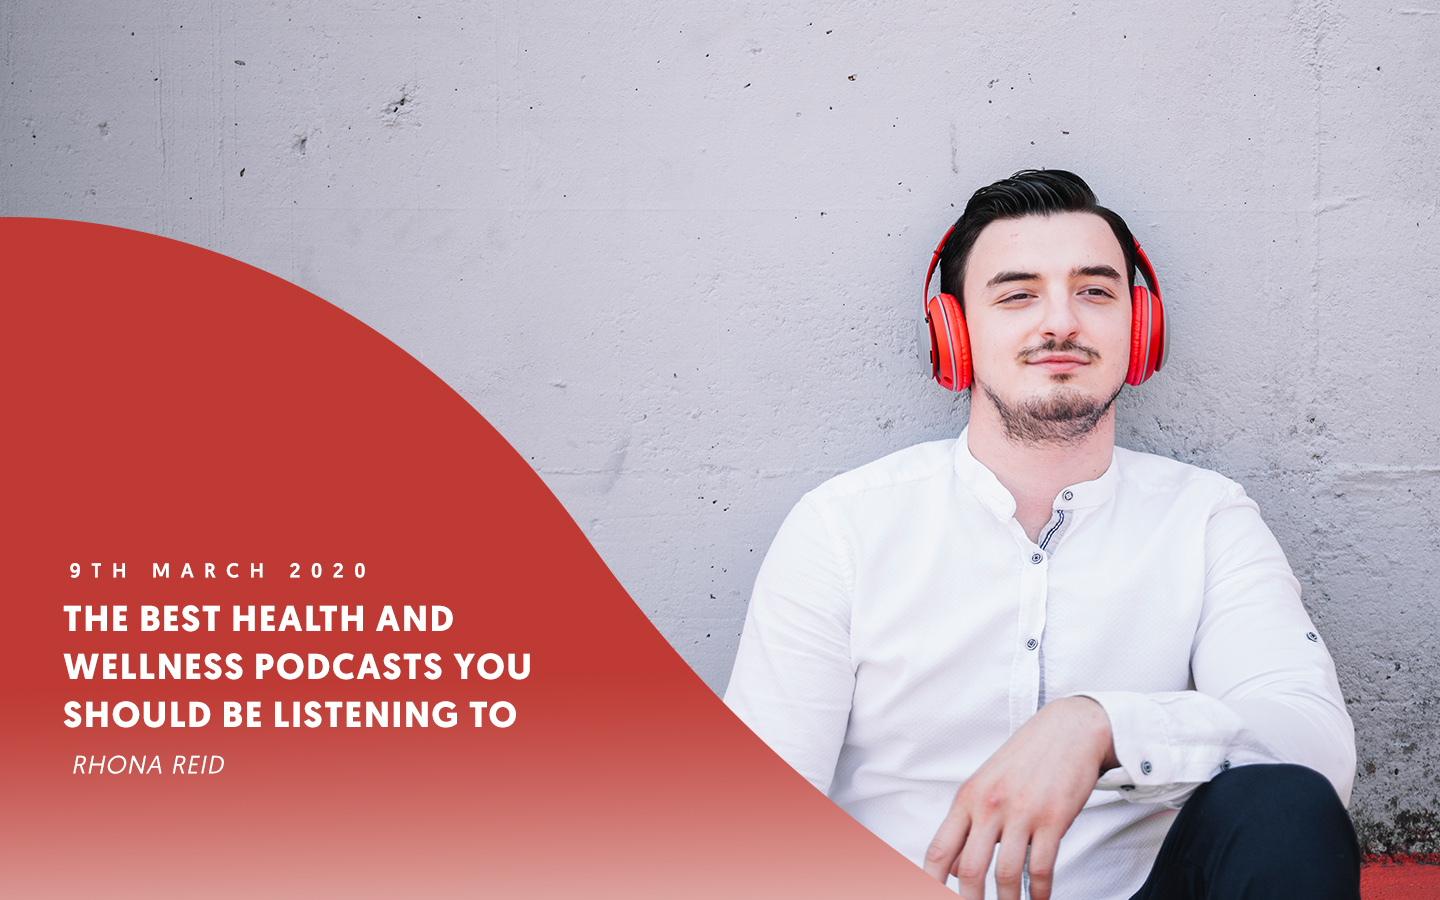 The best health and wellness podcasts you should be listening to – by Rhona Reid